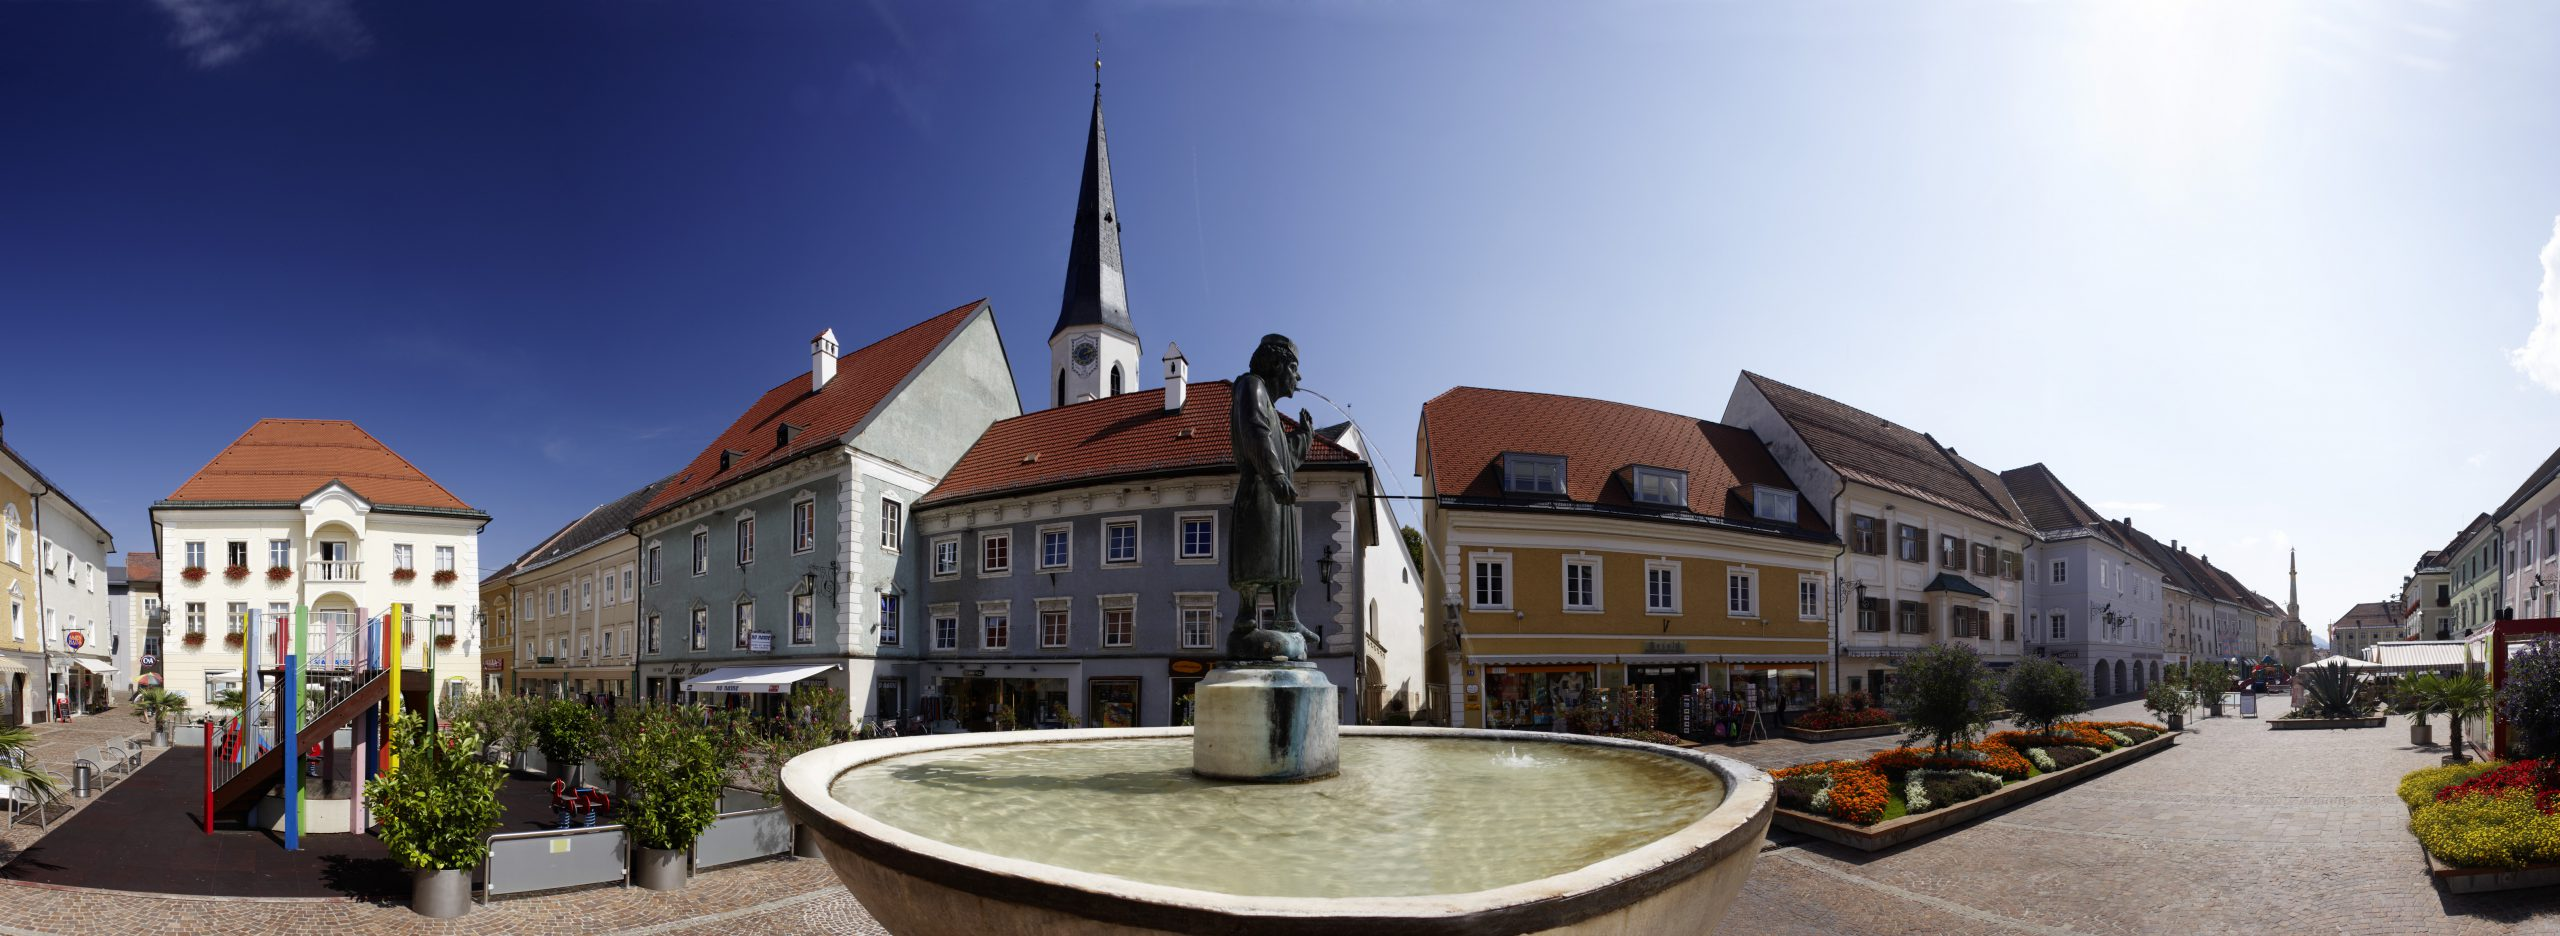 The magnificent main square in St. Veit invites cyclists to stroll